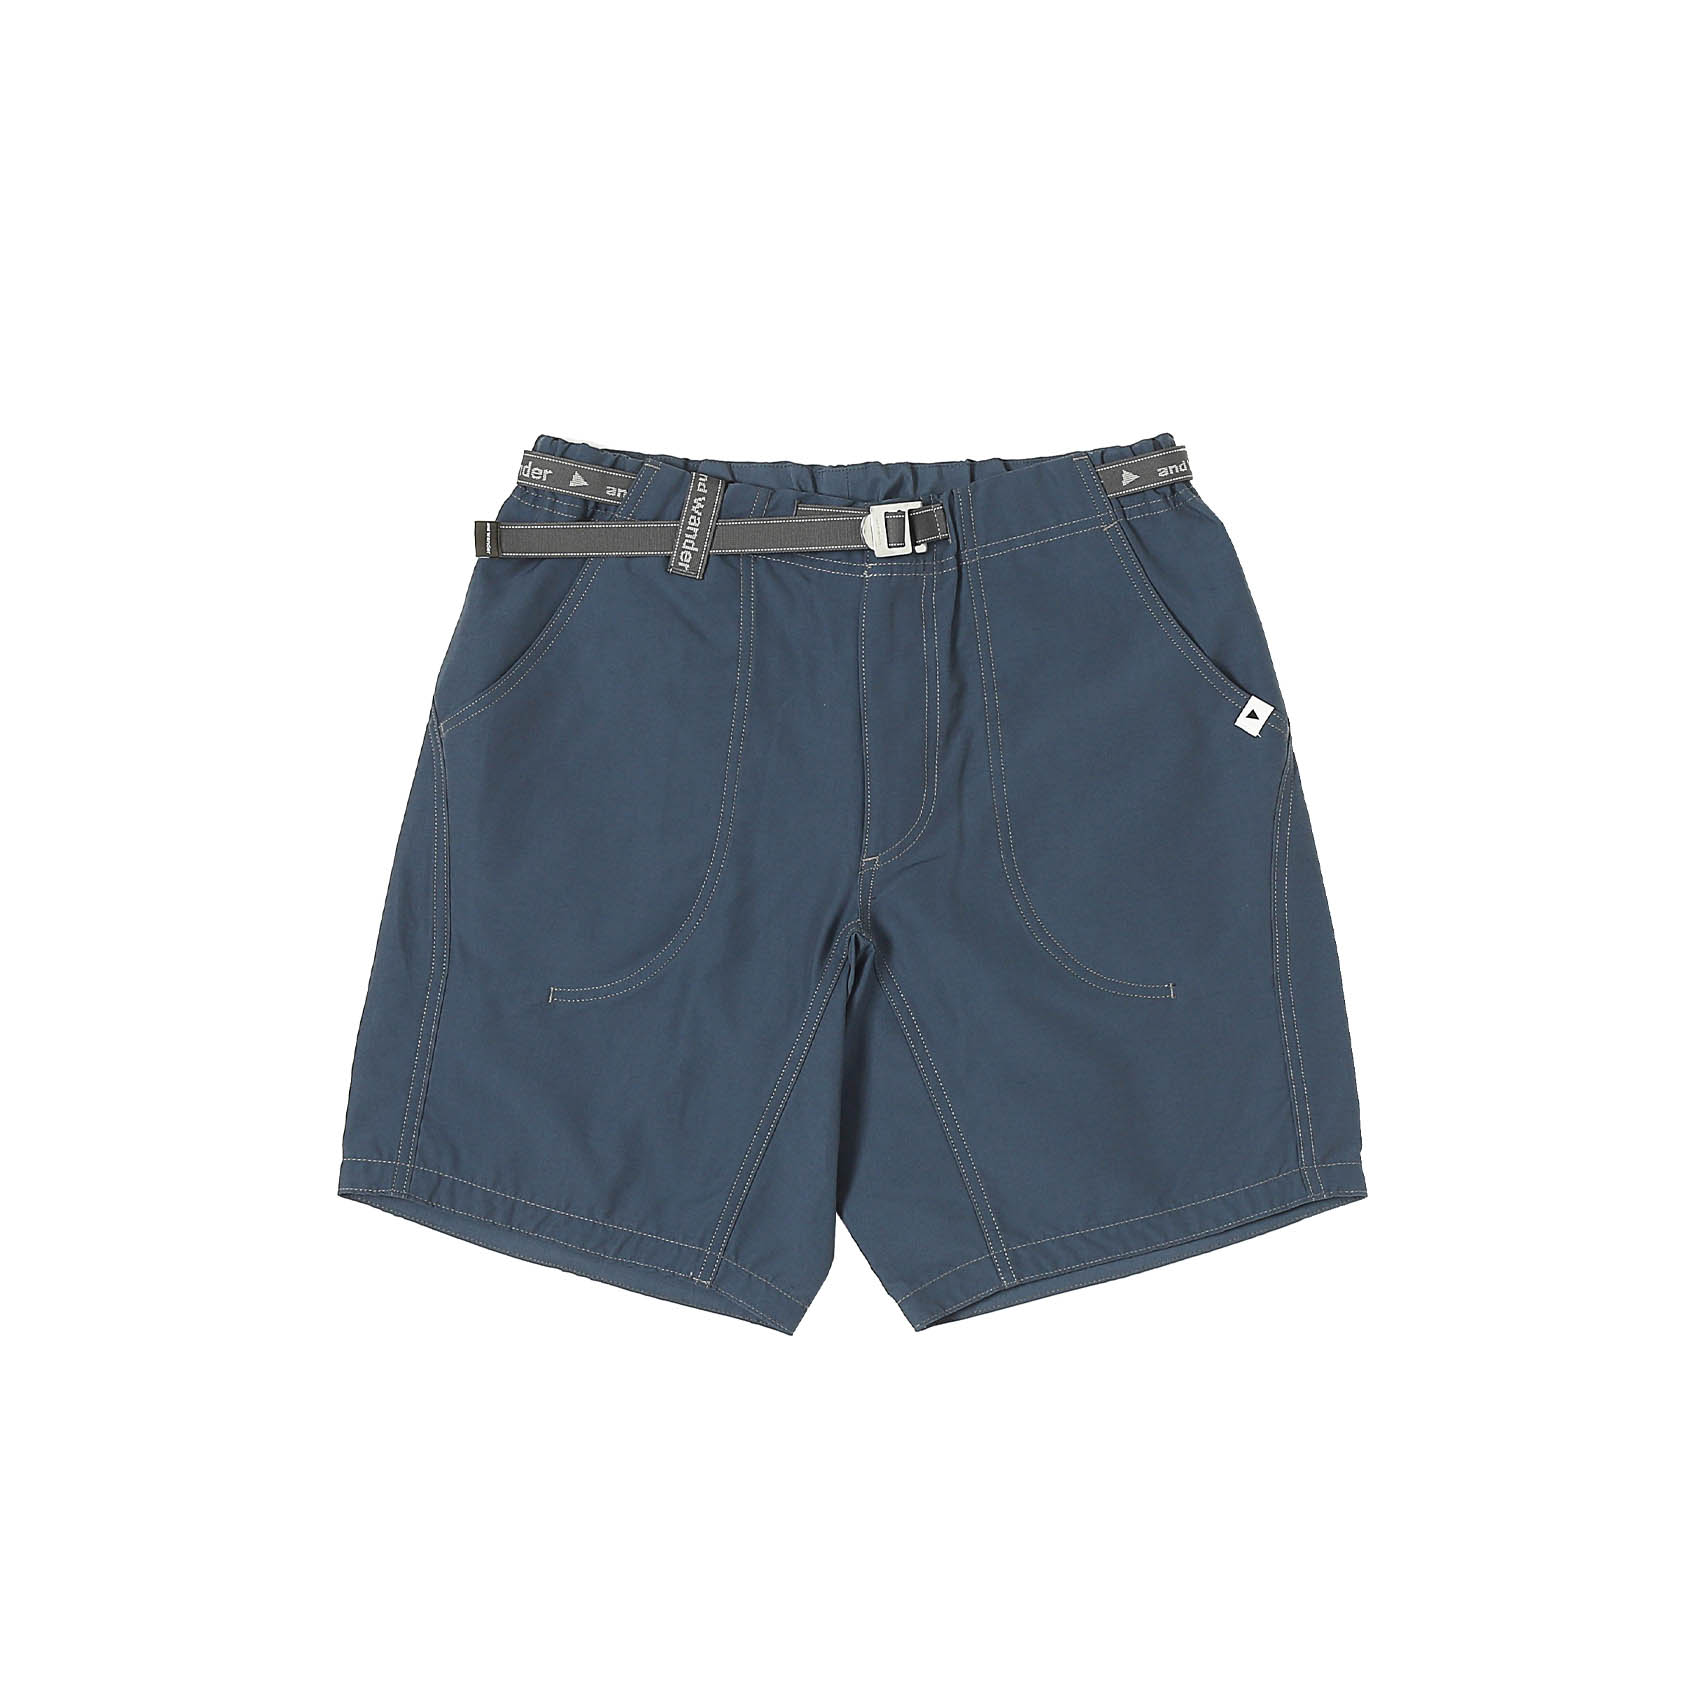 60/40 CLOTH SHORT PANTS - ICE BLUE